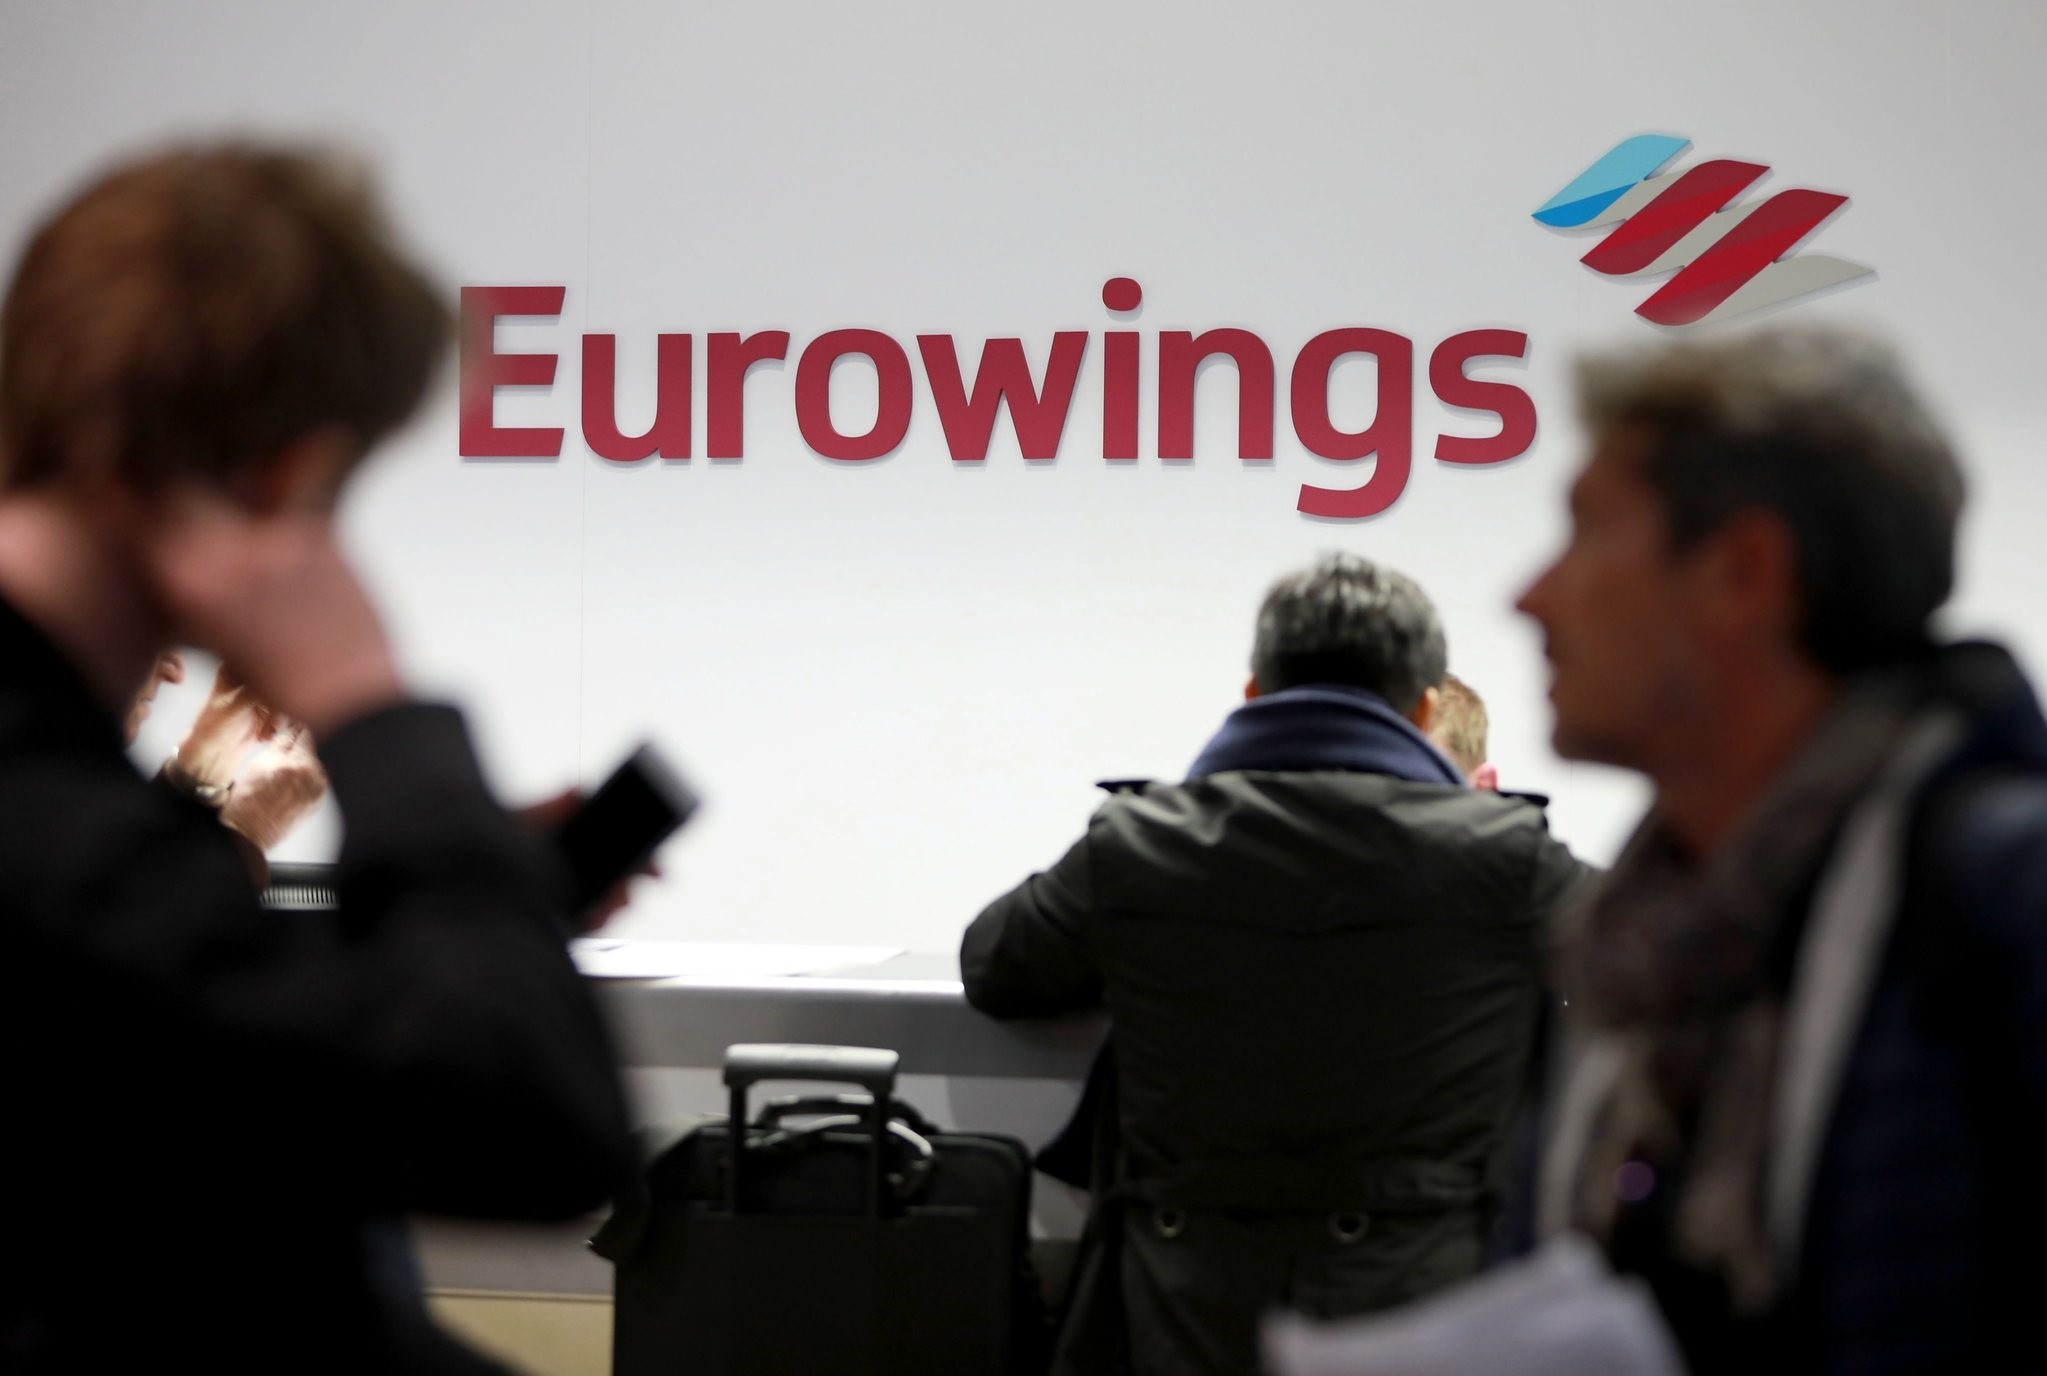 Passengers stand at the counter of low-cost carrier Eurowings at the Cologne/Bonn airport in Germany, 21 October 2016. (EPA Photo)